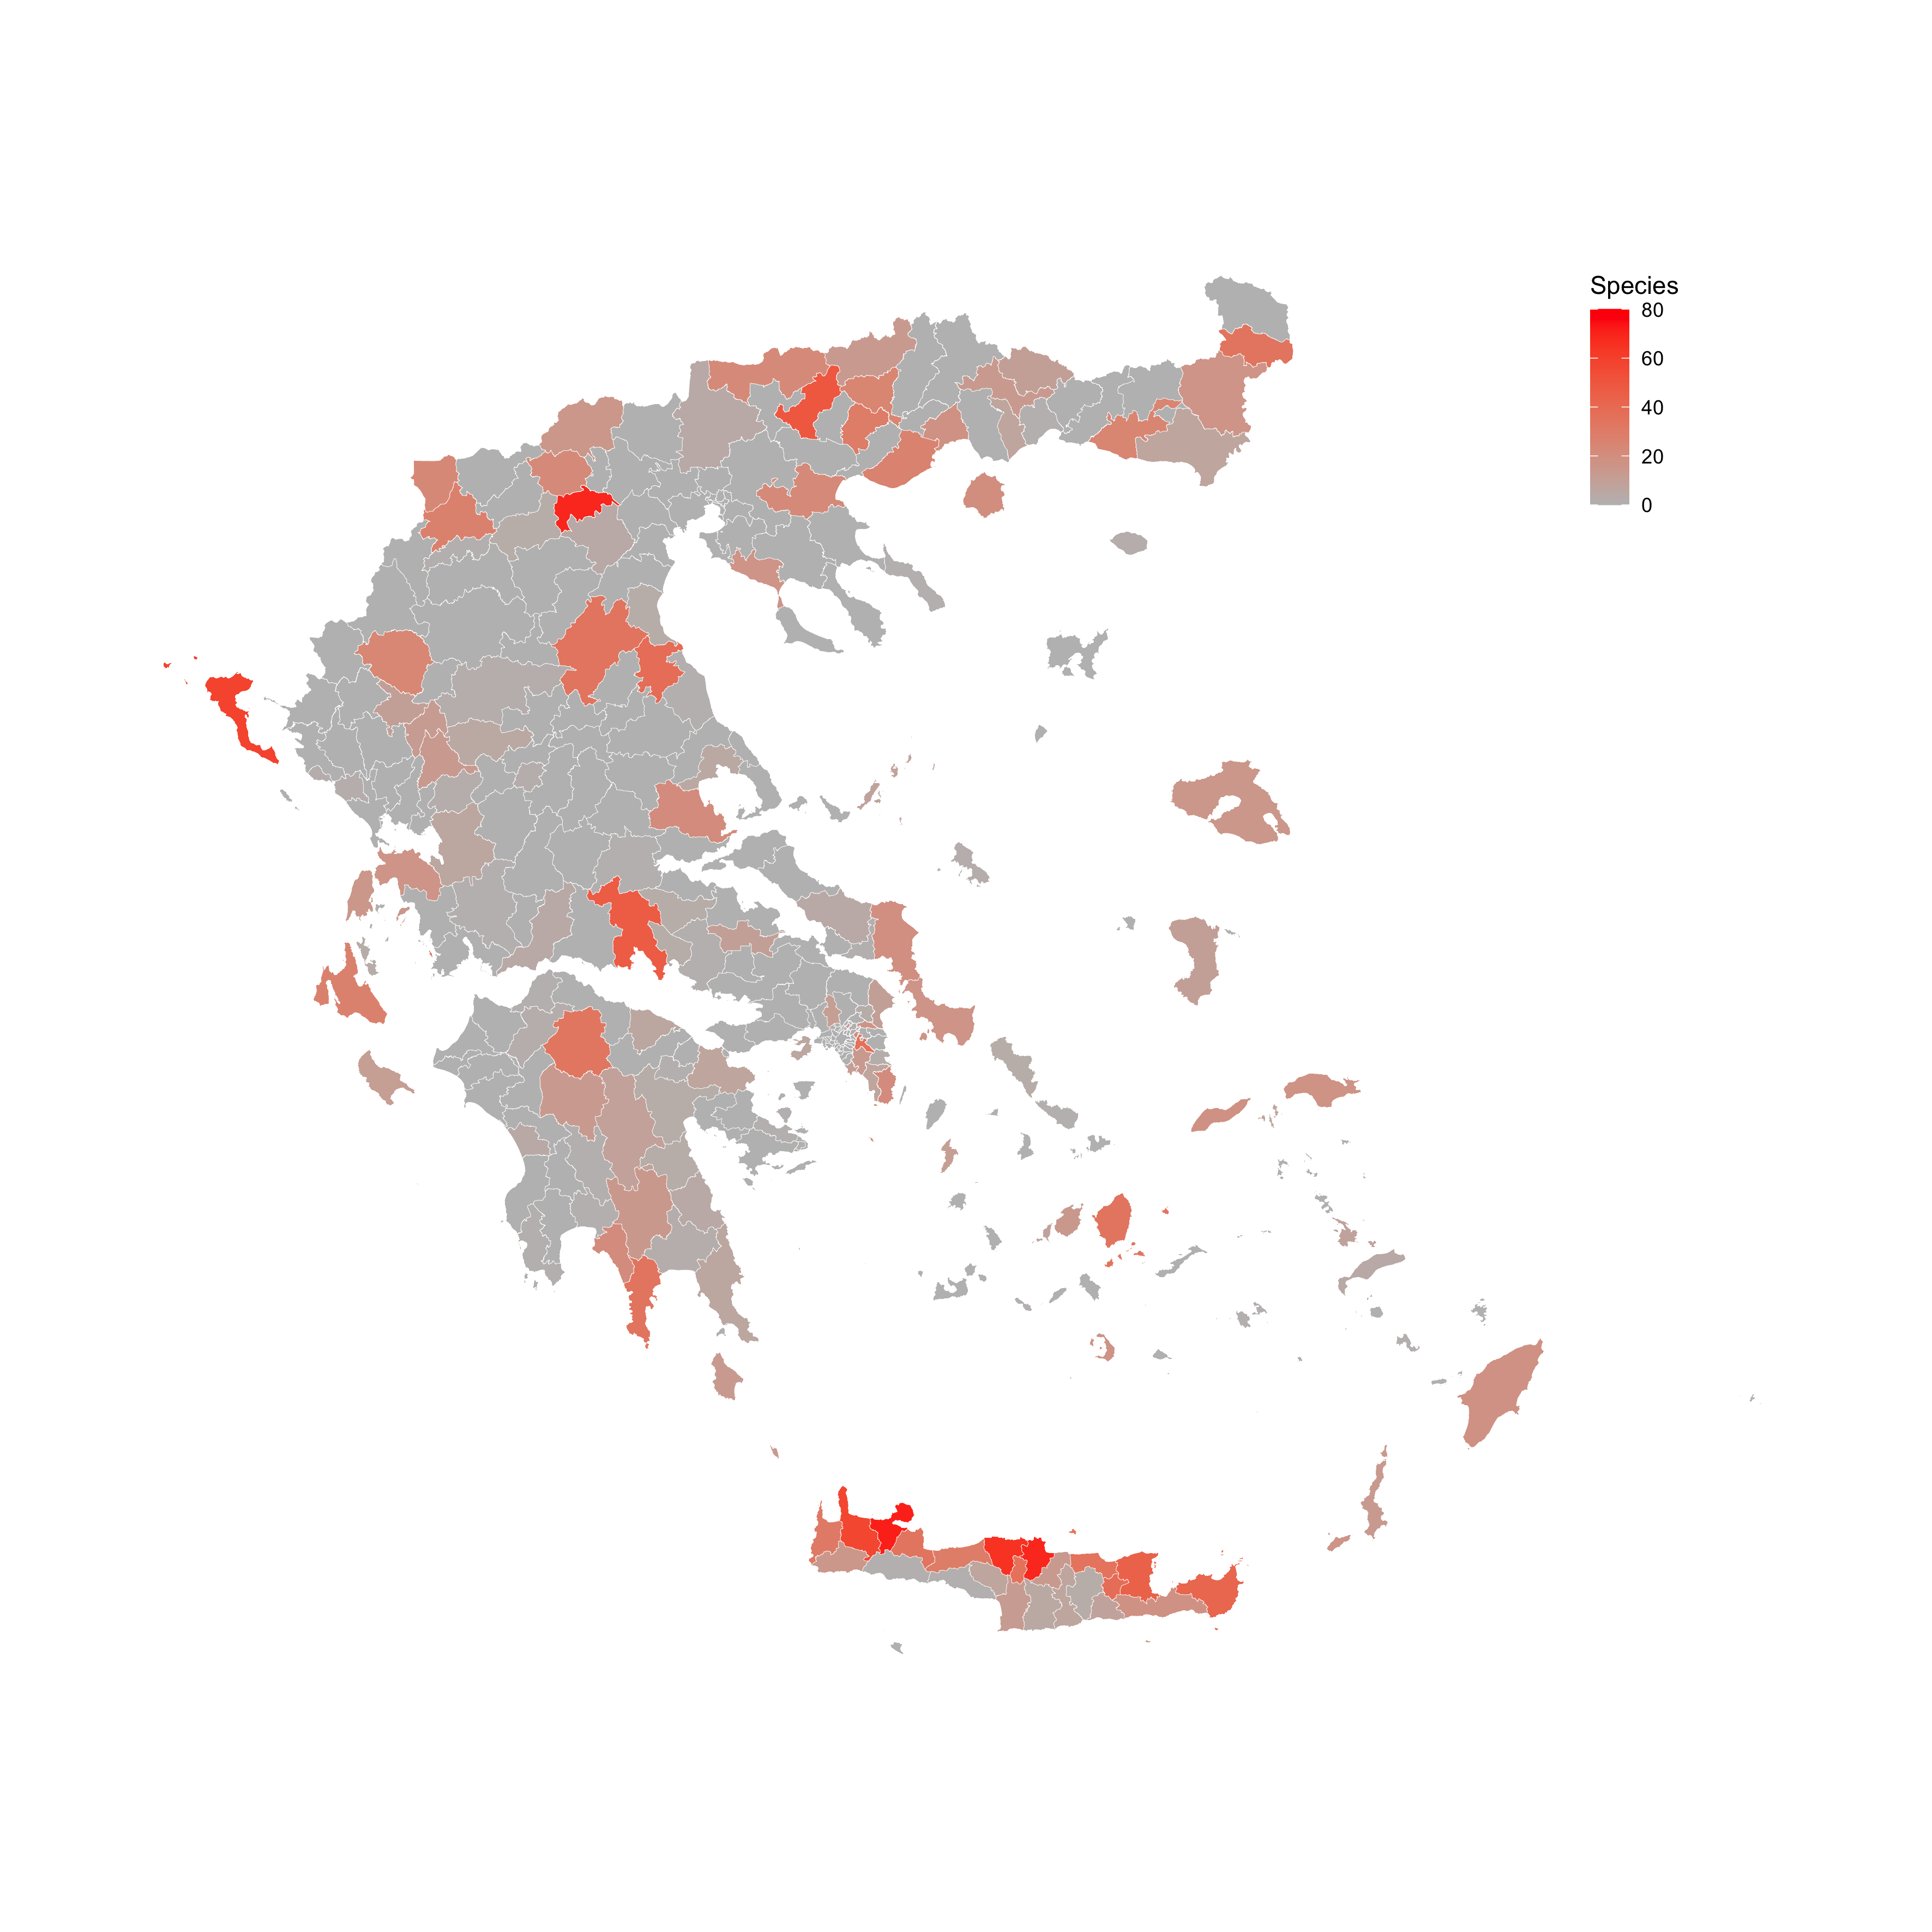 Species sampled per municipality in Greece